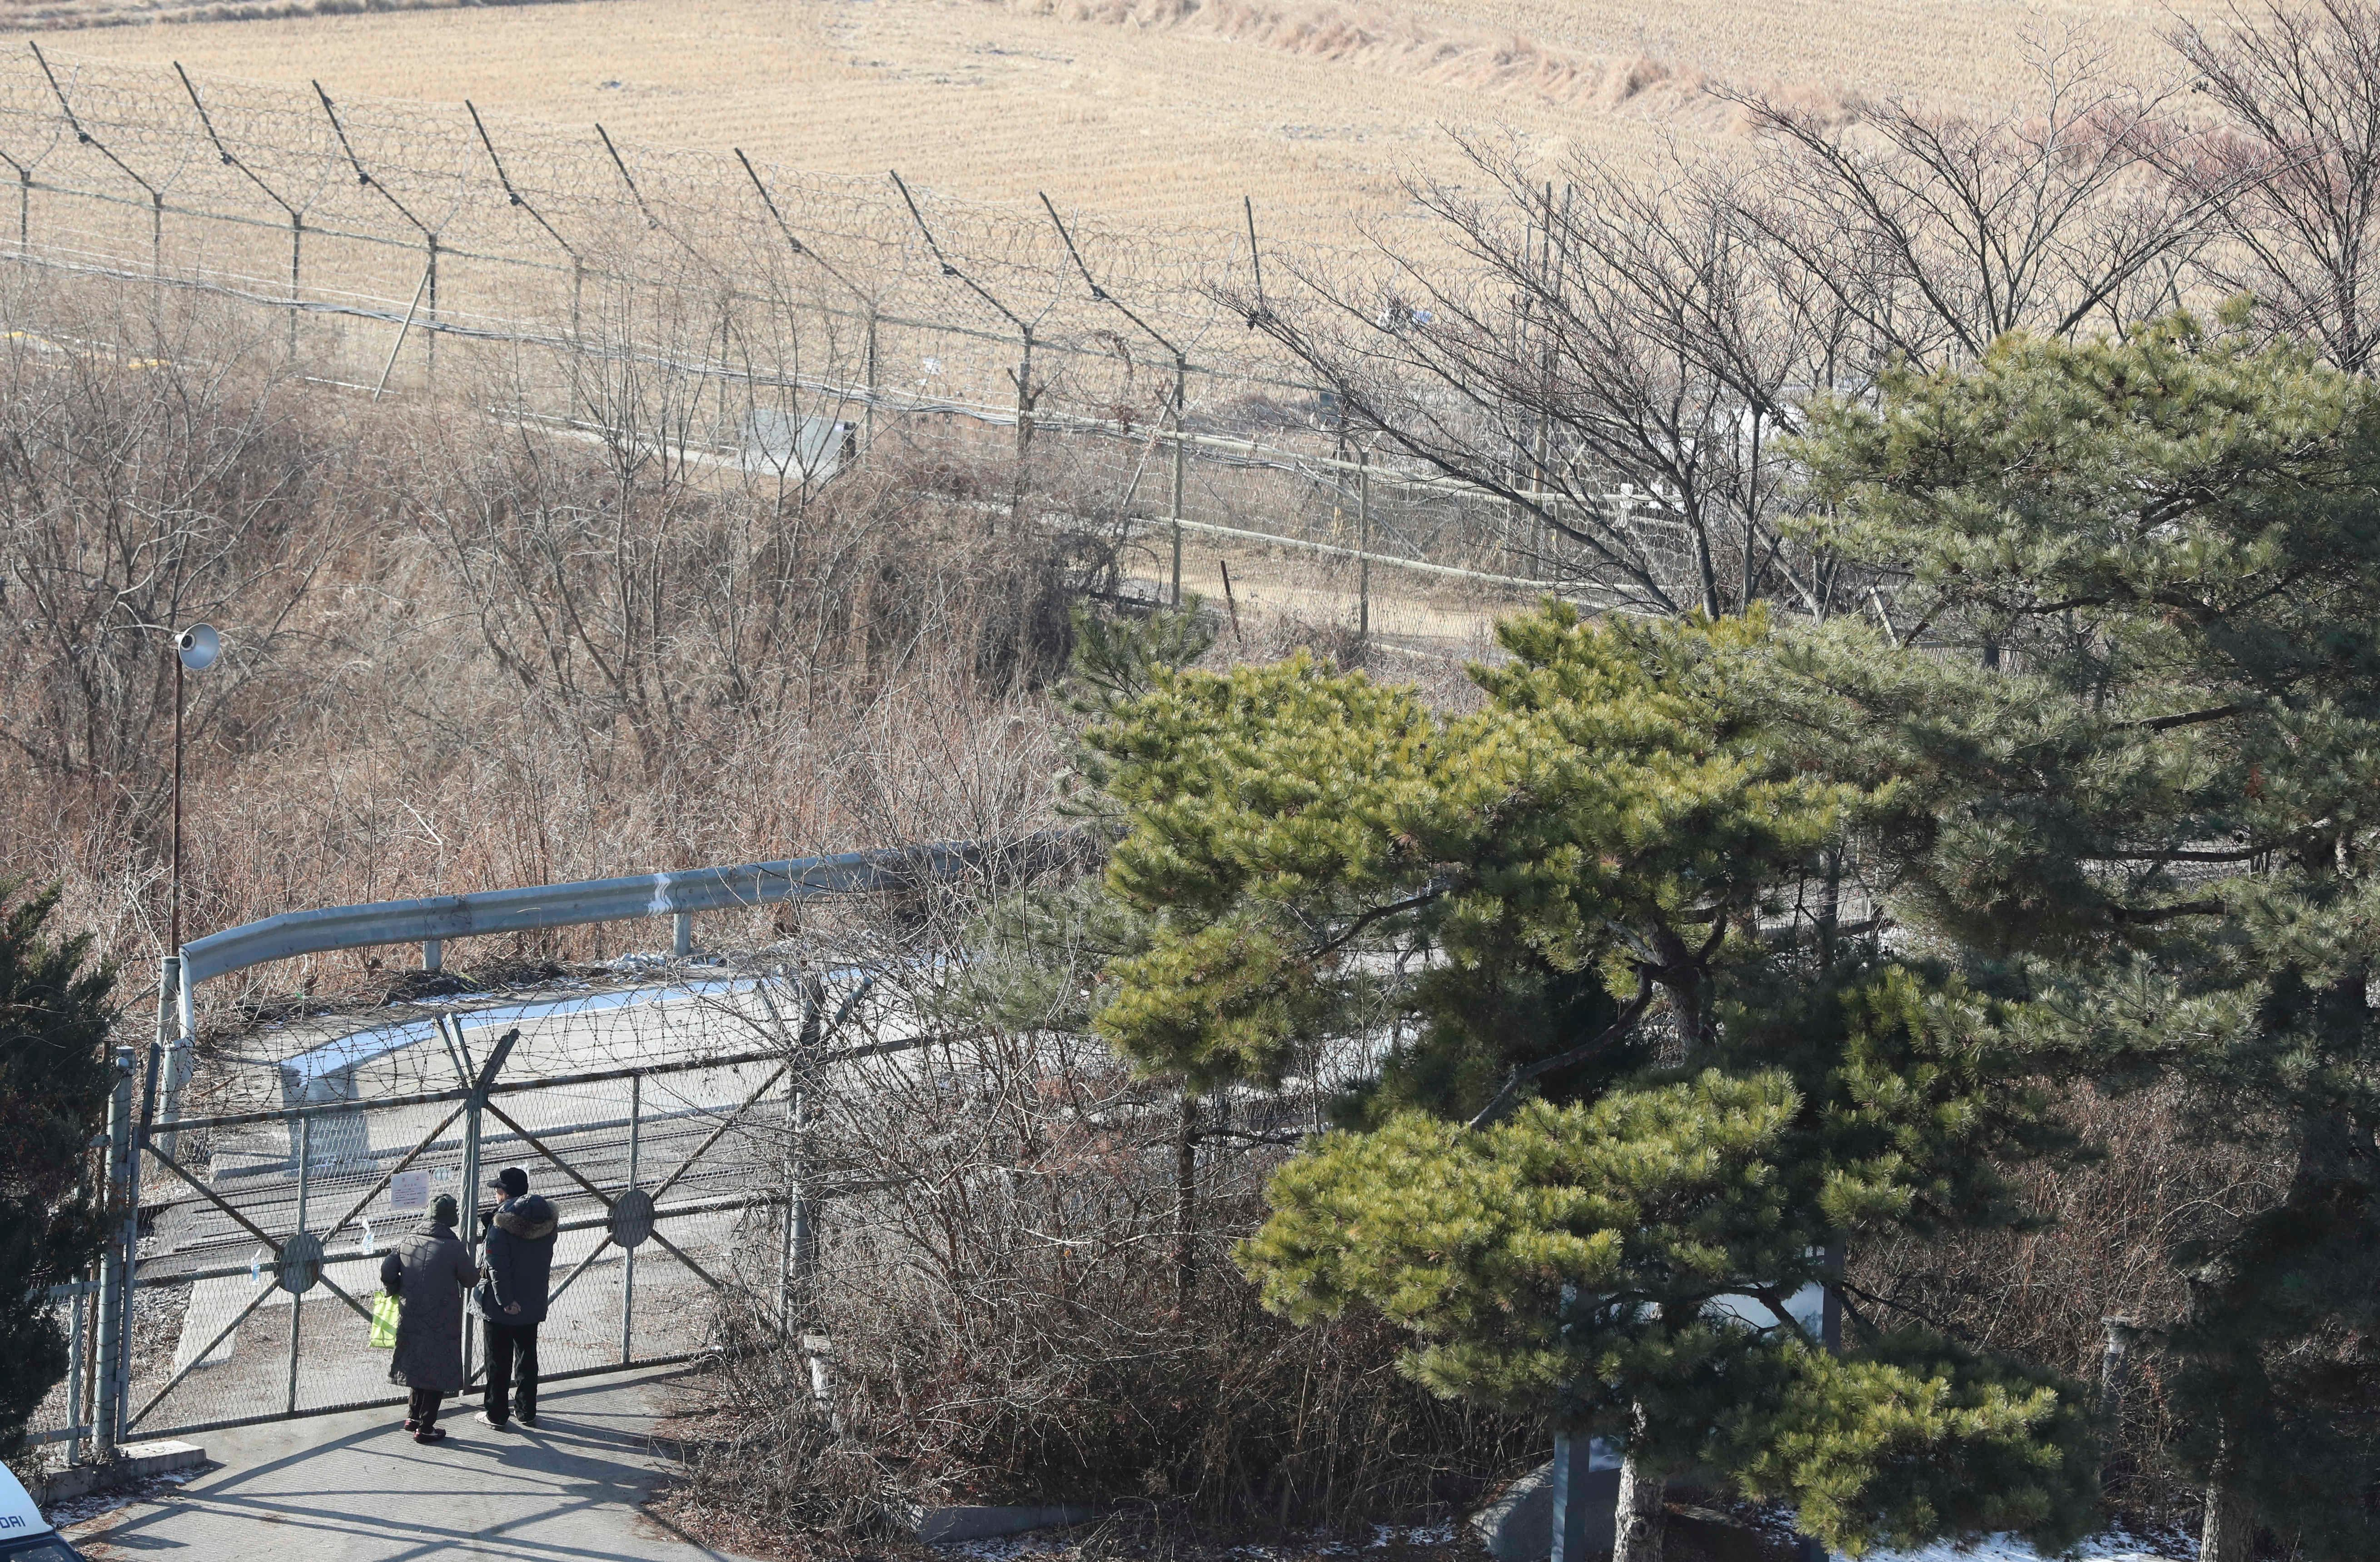 Visitors stand near the military wire fence at the Imjingak Pavilion in Paju, South Korea, Monday, Jan. 1, 2018. North Korean leader Kim Jong Un said Monday the United States should be aware that his country's nuclear forces are now a reality, not a threat. But he also struck a conciliatory tone in his New Year's address, wishing success for the Winter Olympics set to begin in the South in February and suggesting the North may send a delegation to participate. (AP Photo/Lee Jin-man)